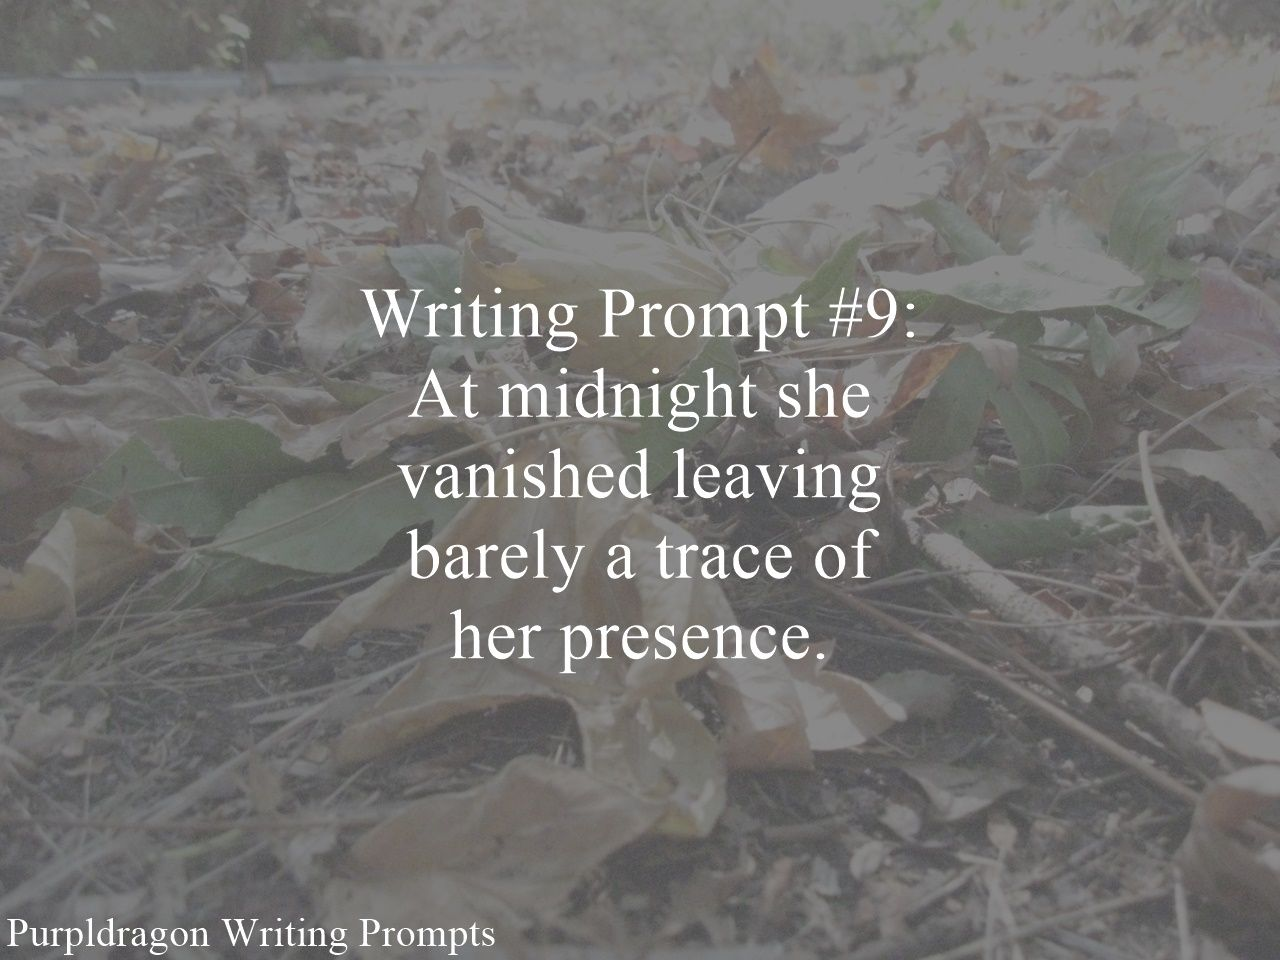 Writing Prompt #9: At midnight she vanished leaving barely a trace of her presence.